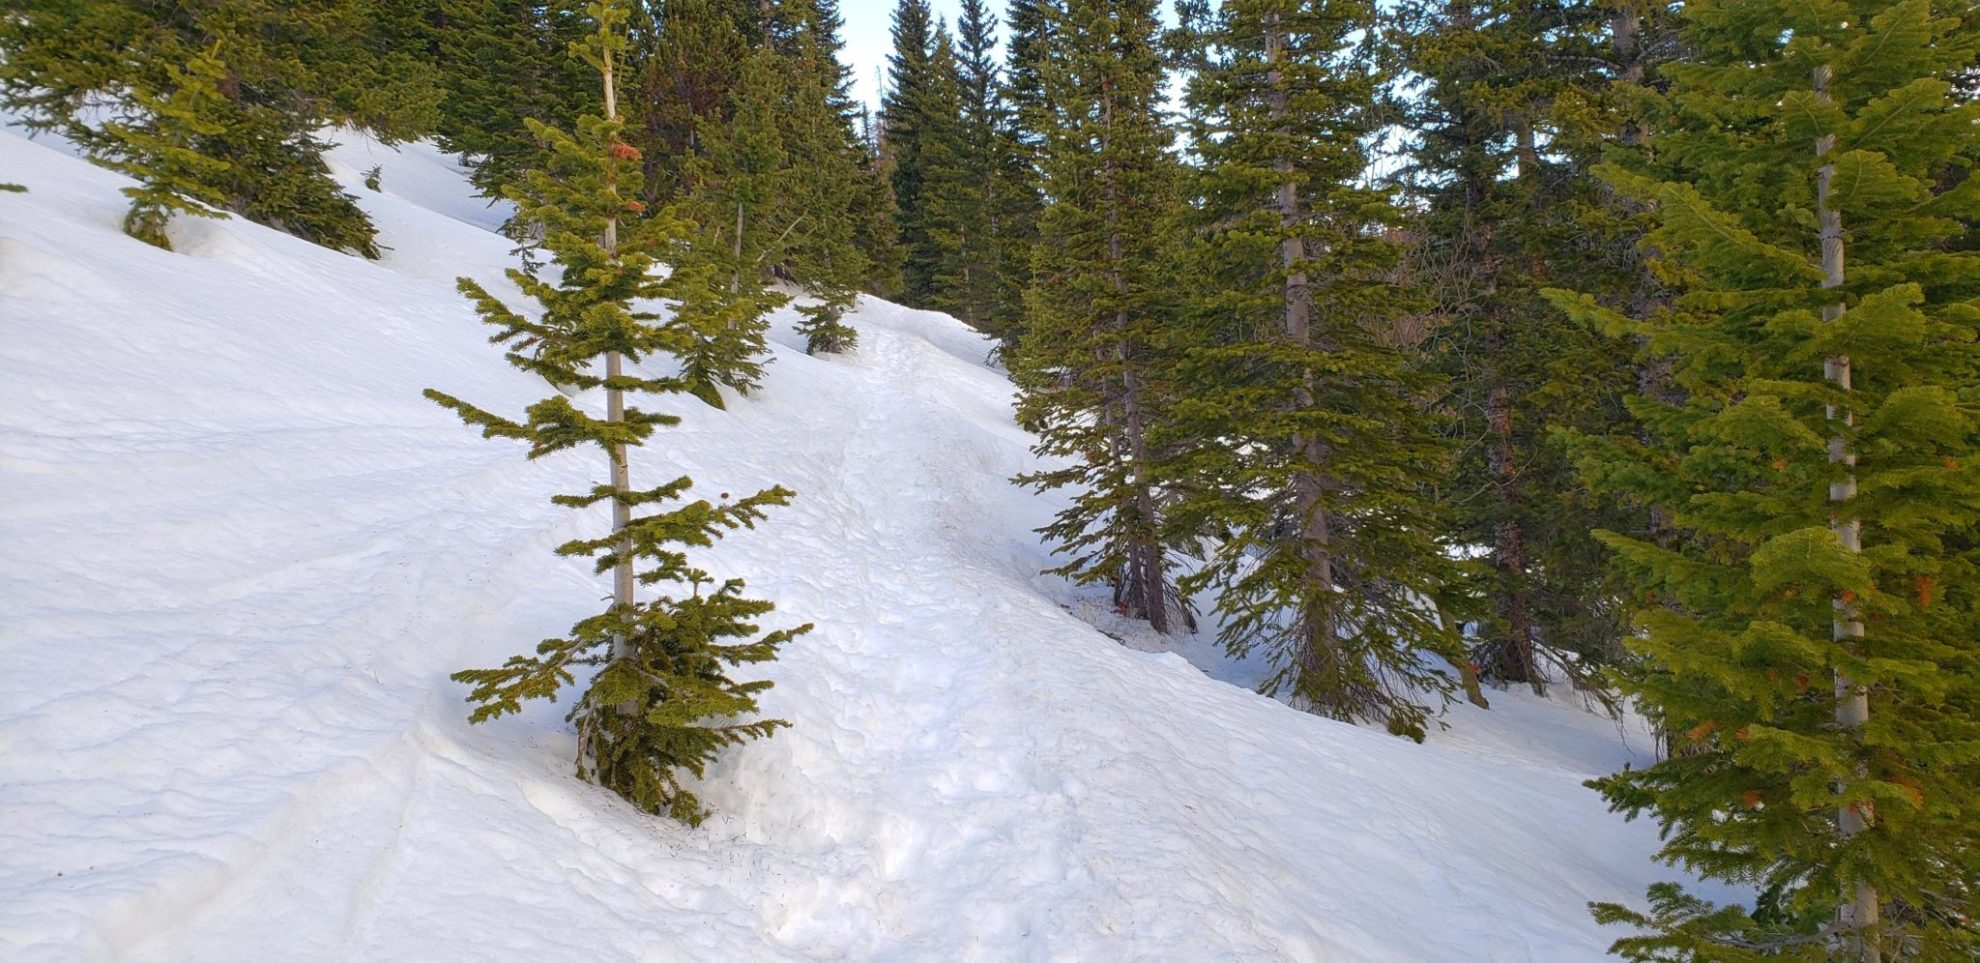 Heading to the Flattop Trail junction above Bear Lake